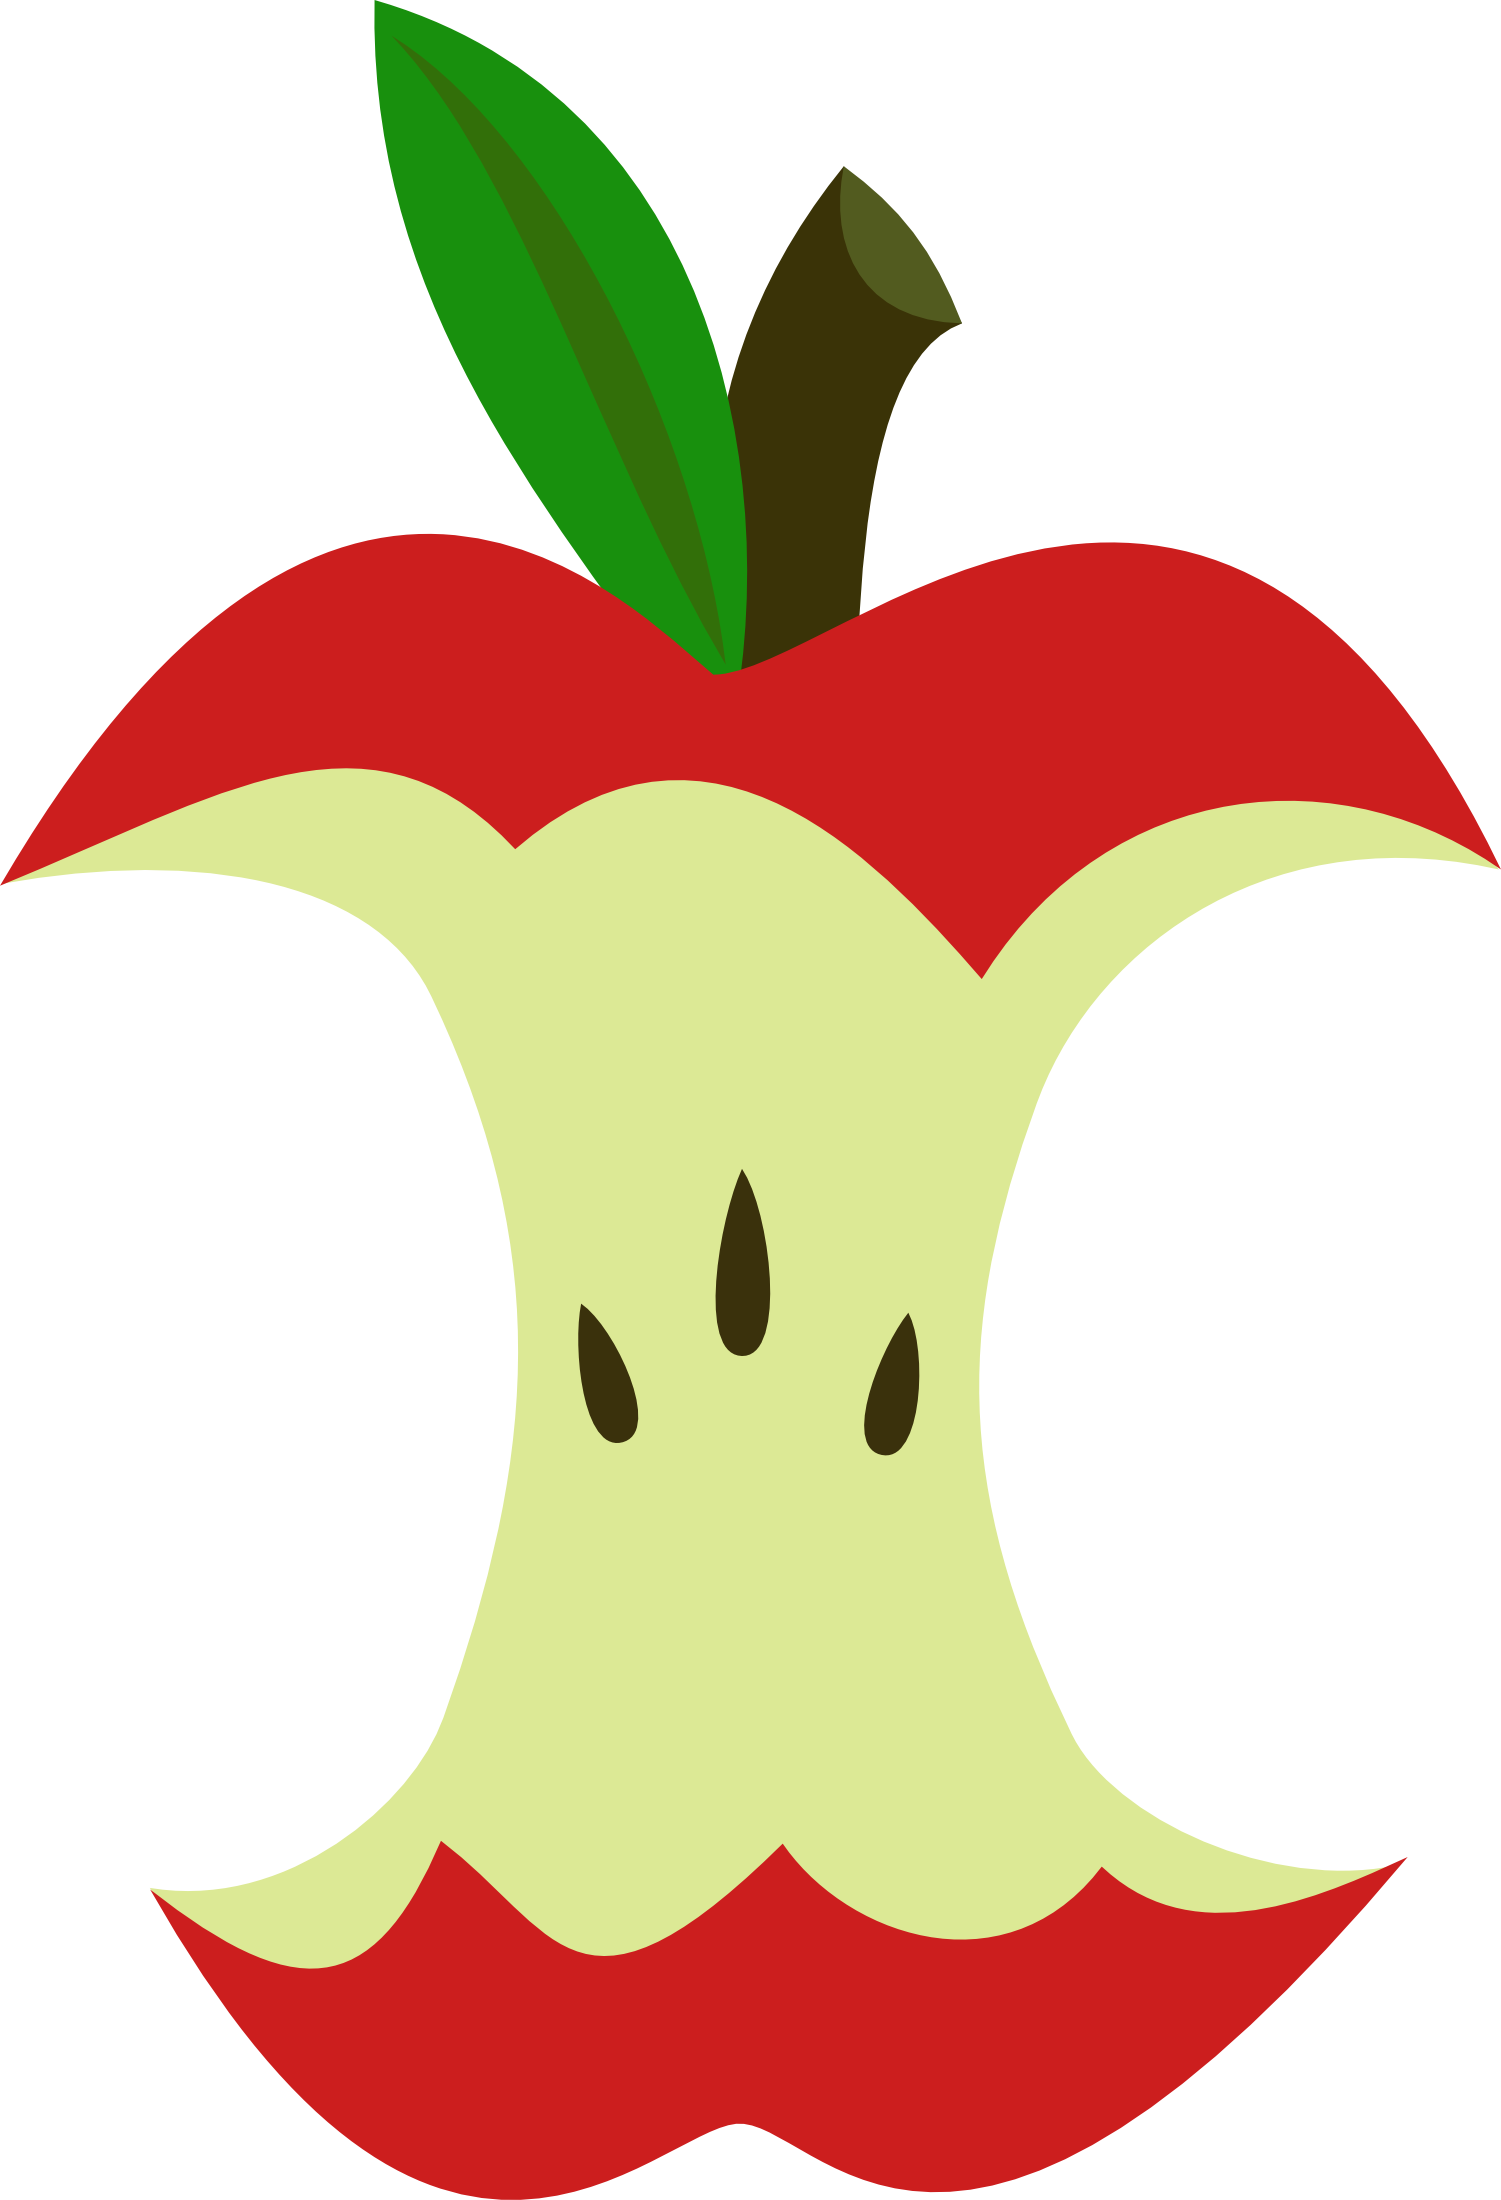 Red blue yellow september apple borders clipart jpg black and white library The Importance of Your Core (Not Just Abs!) | Apples, Cricut and Crafty jpg black and white library